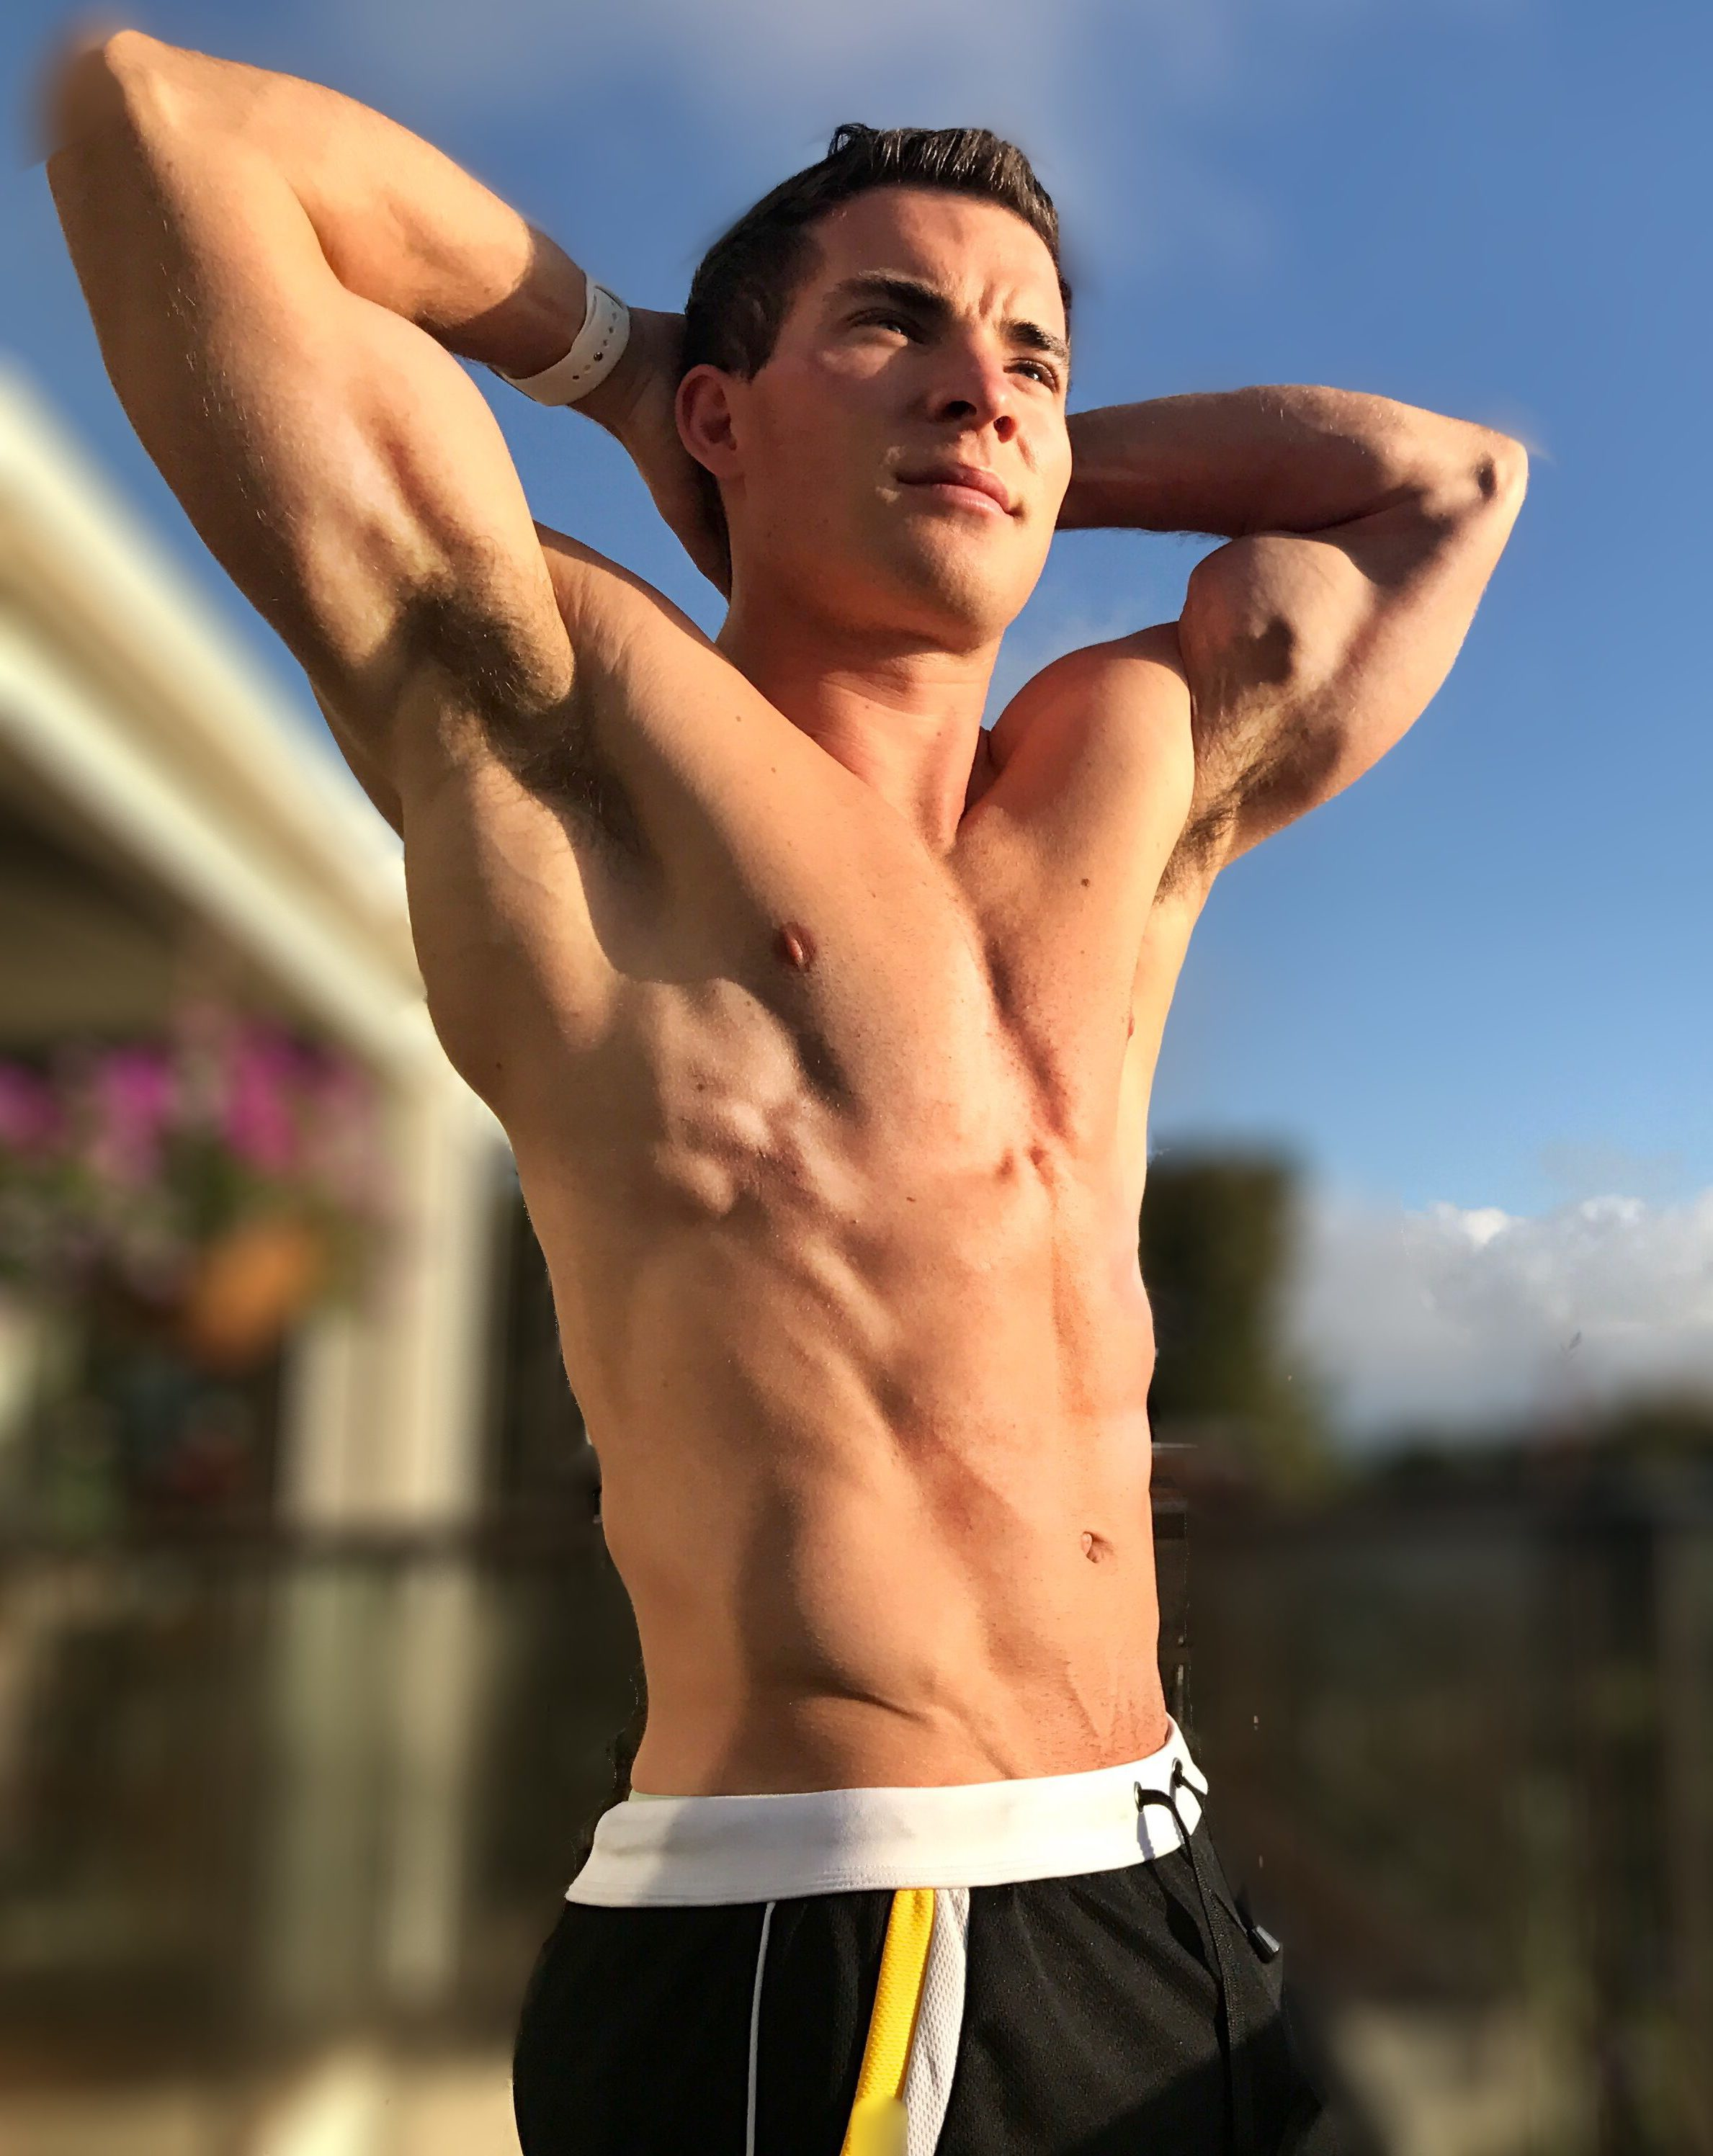 Zac efron baywatch diet and workout explained george health i truly believe that is is possible for most people to achieve a physique similar to zacs efron is within the natural limit of how much muscle mass one stopboris Choice Image